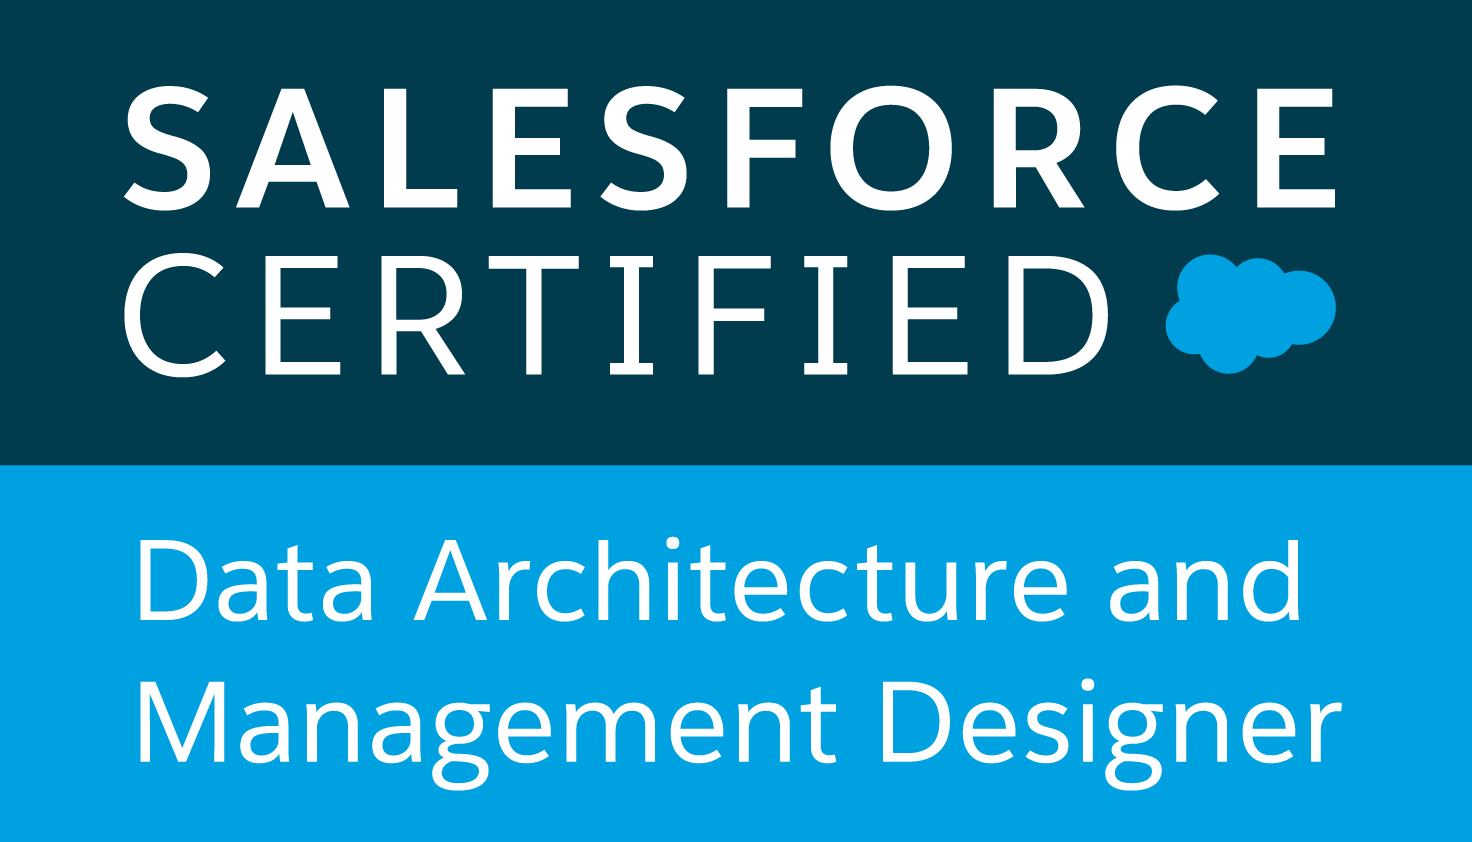 Certified Salesforce Data Architecture and Management Designer